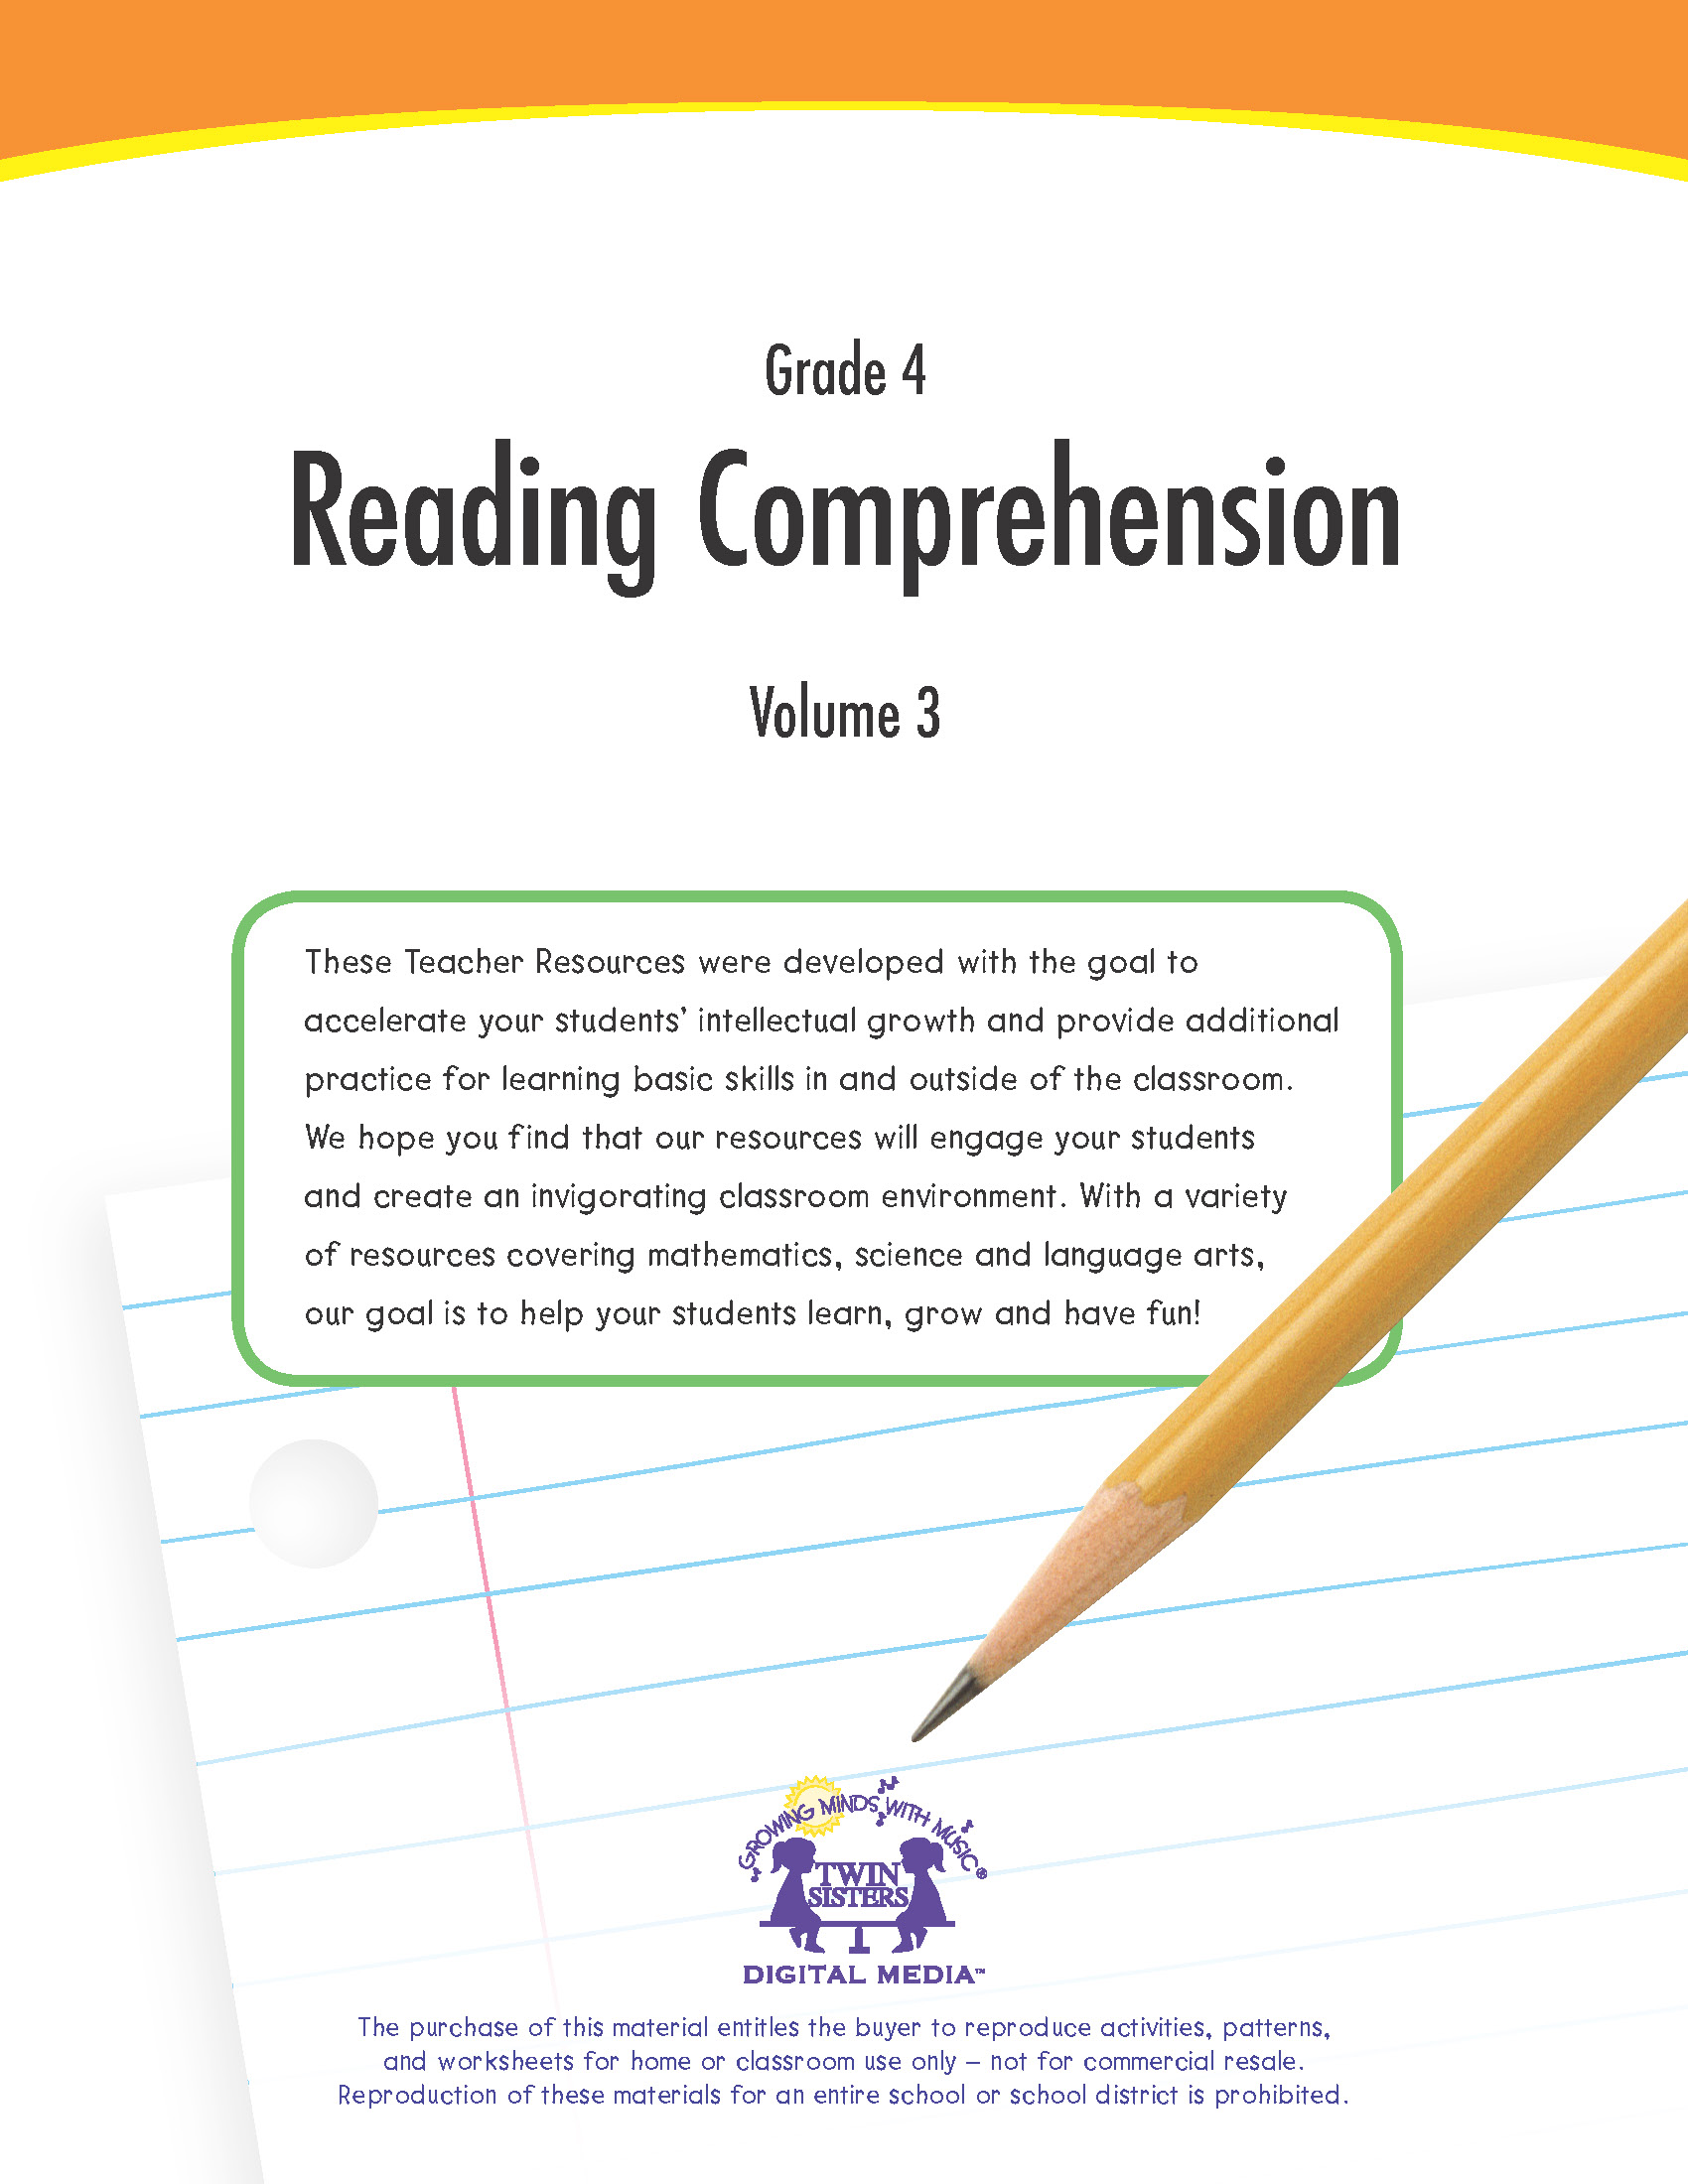 Grade 4 Reading Comprehension Volume 3